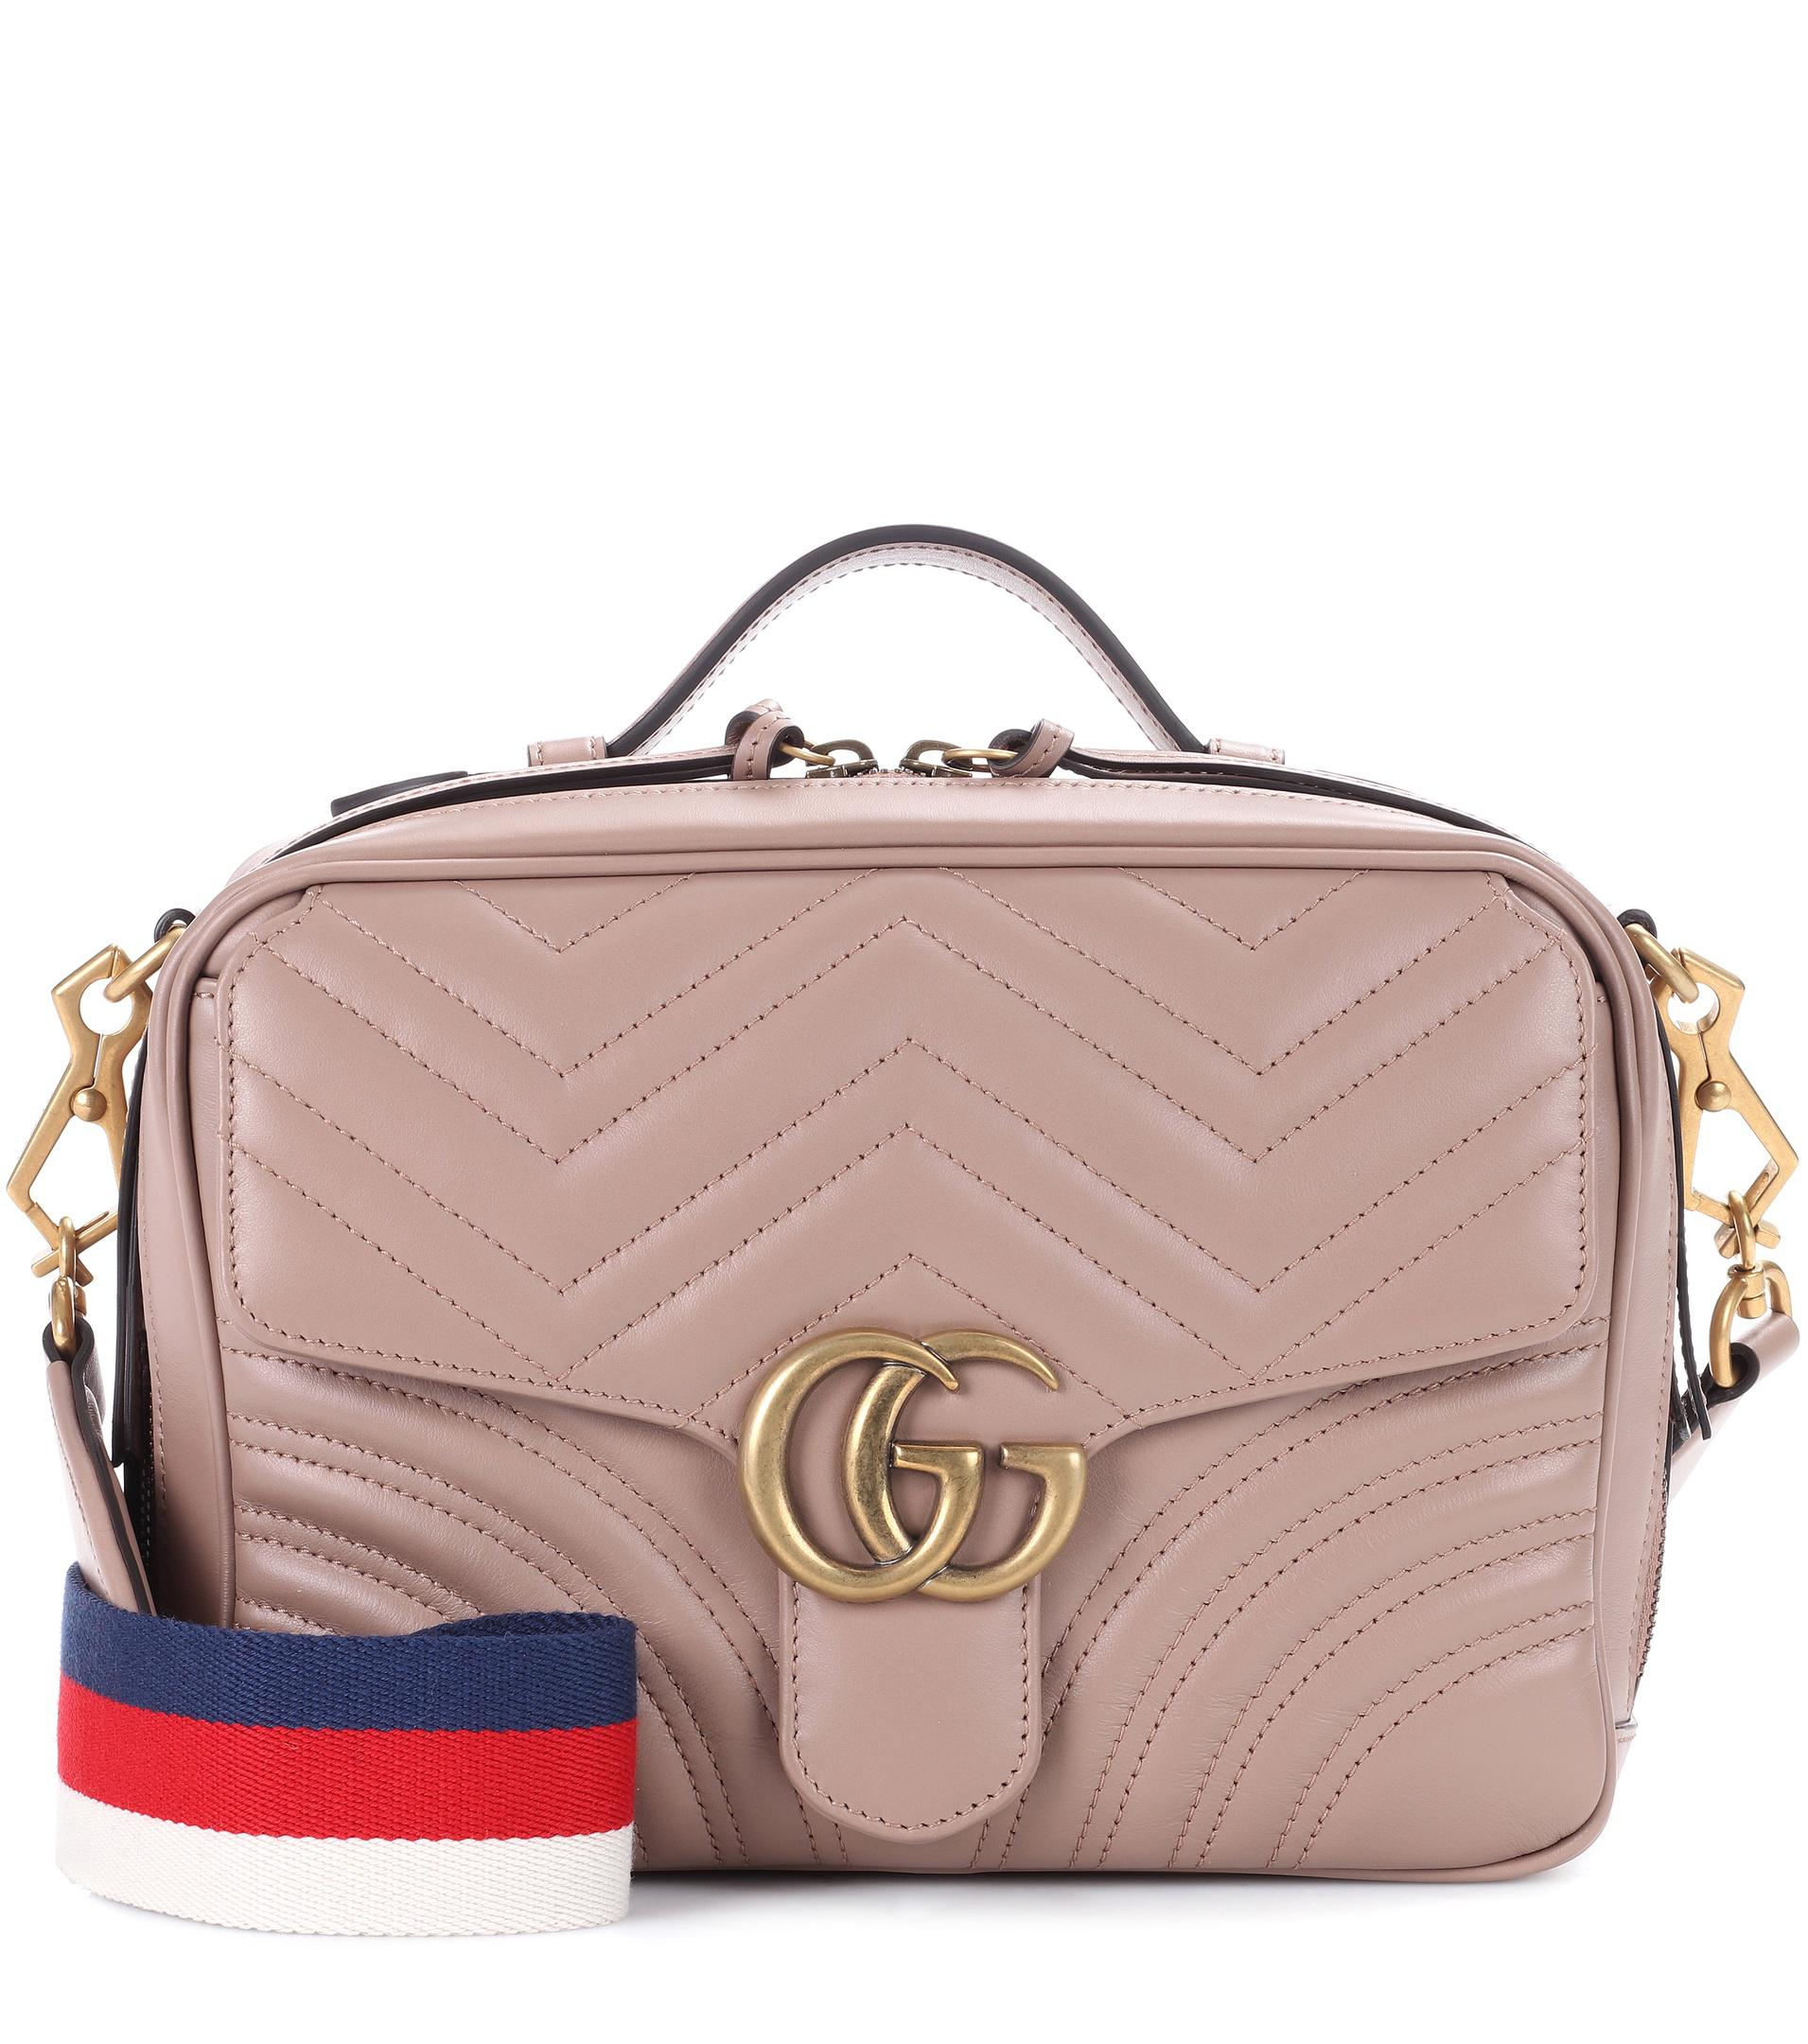 e699e109fa Gucci Gg Marmont Matelassé Leather Shoulder Bag in Natural - Lyst